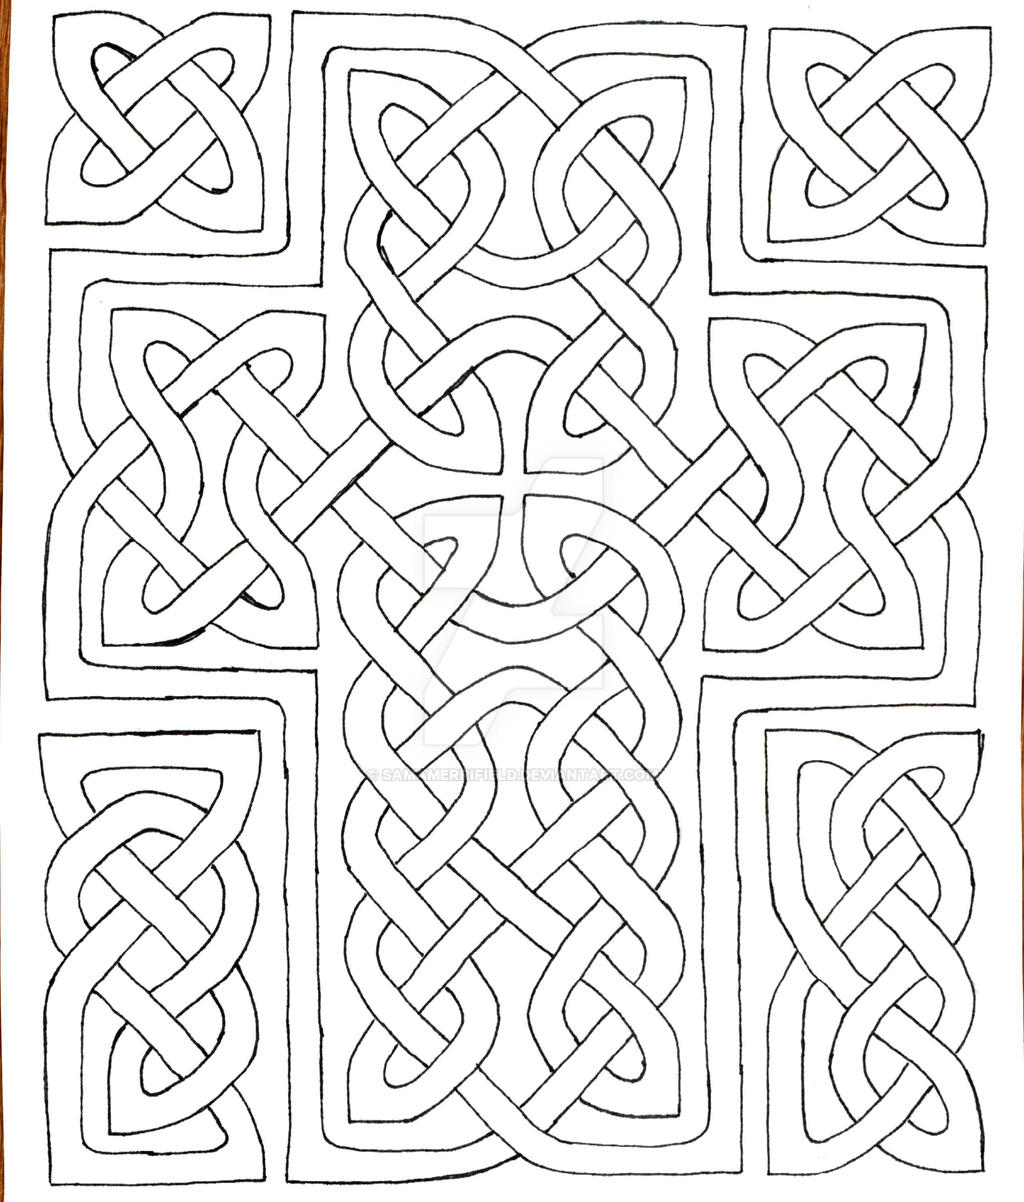 coloring book celtic cross by samamerrifield coloring book celtic cross by samamerrifield - Celtic Coloring Book